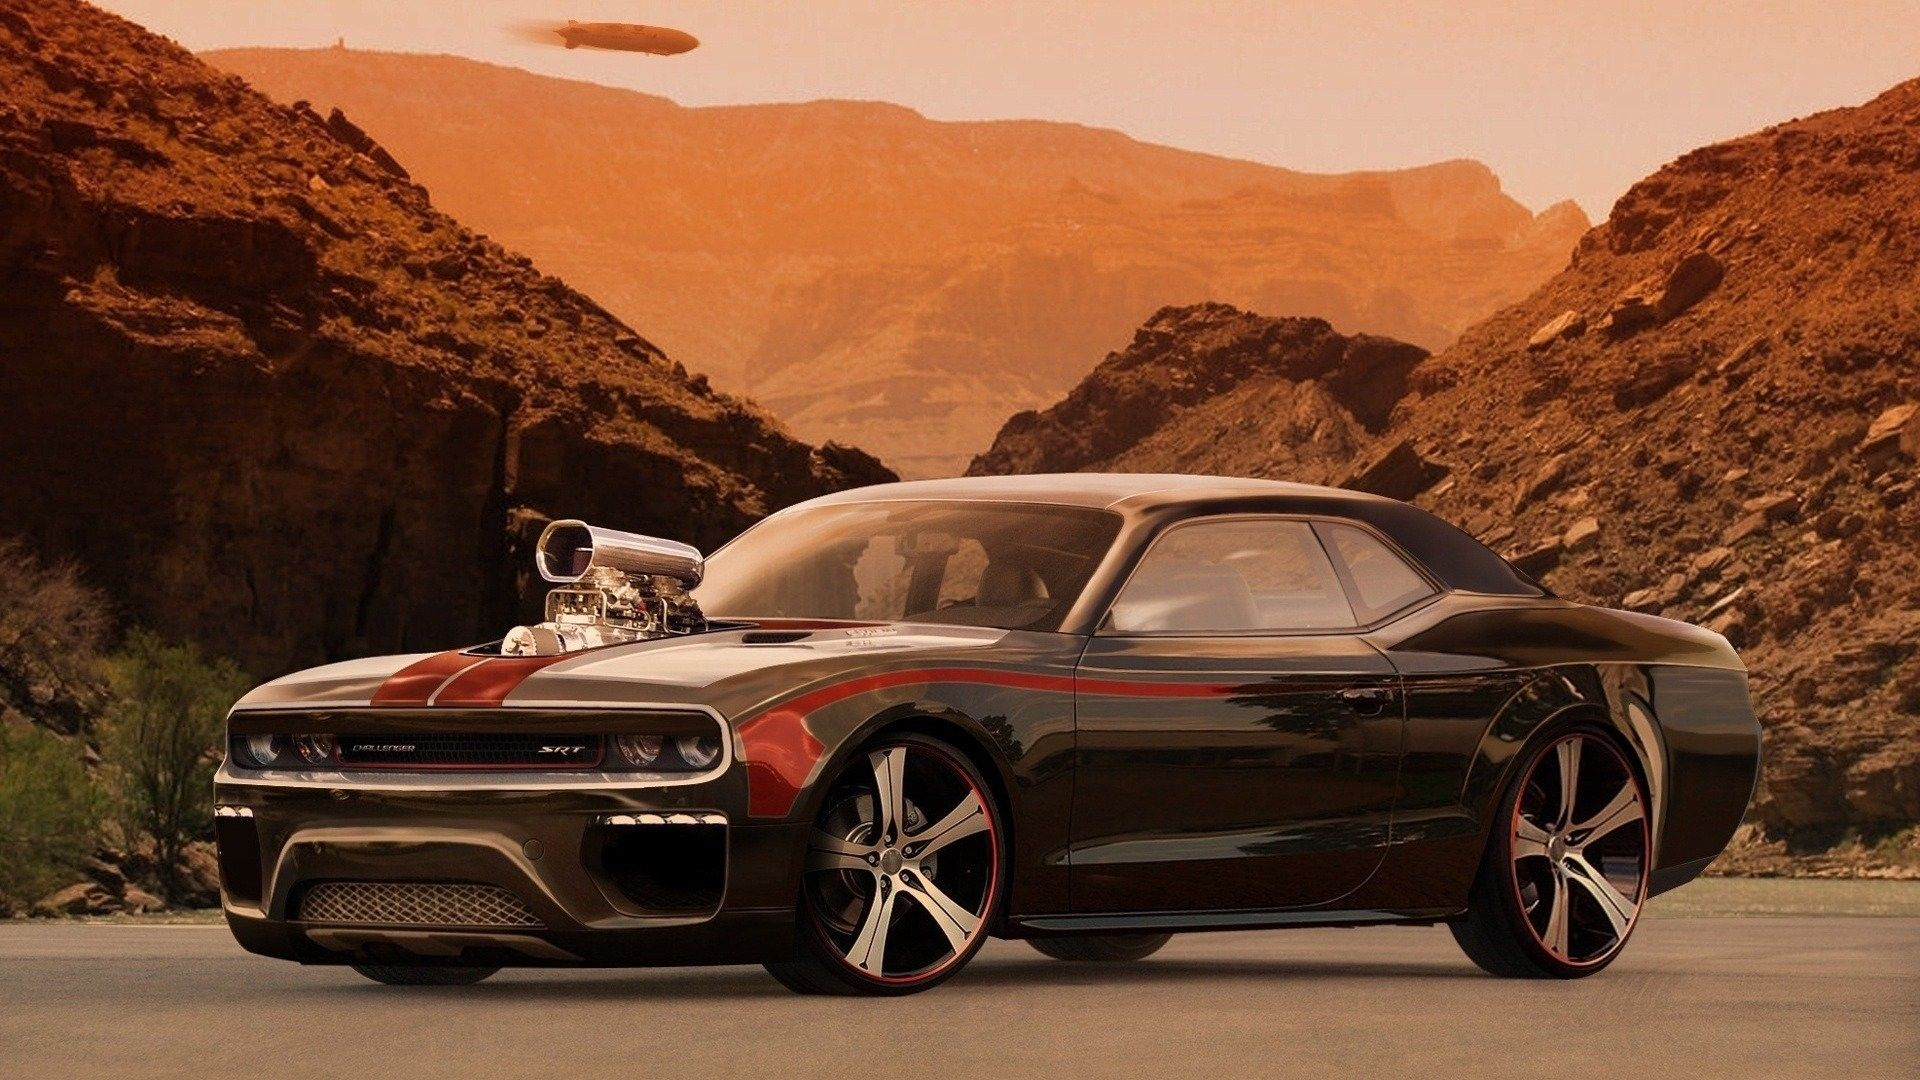 1920x1080 Muscle Car Wallpaper Best Muscle Cars Car Wallpapers